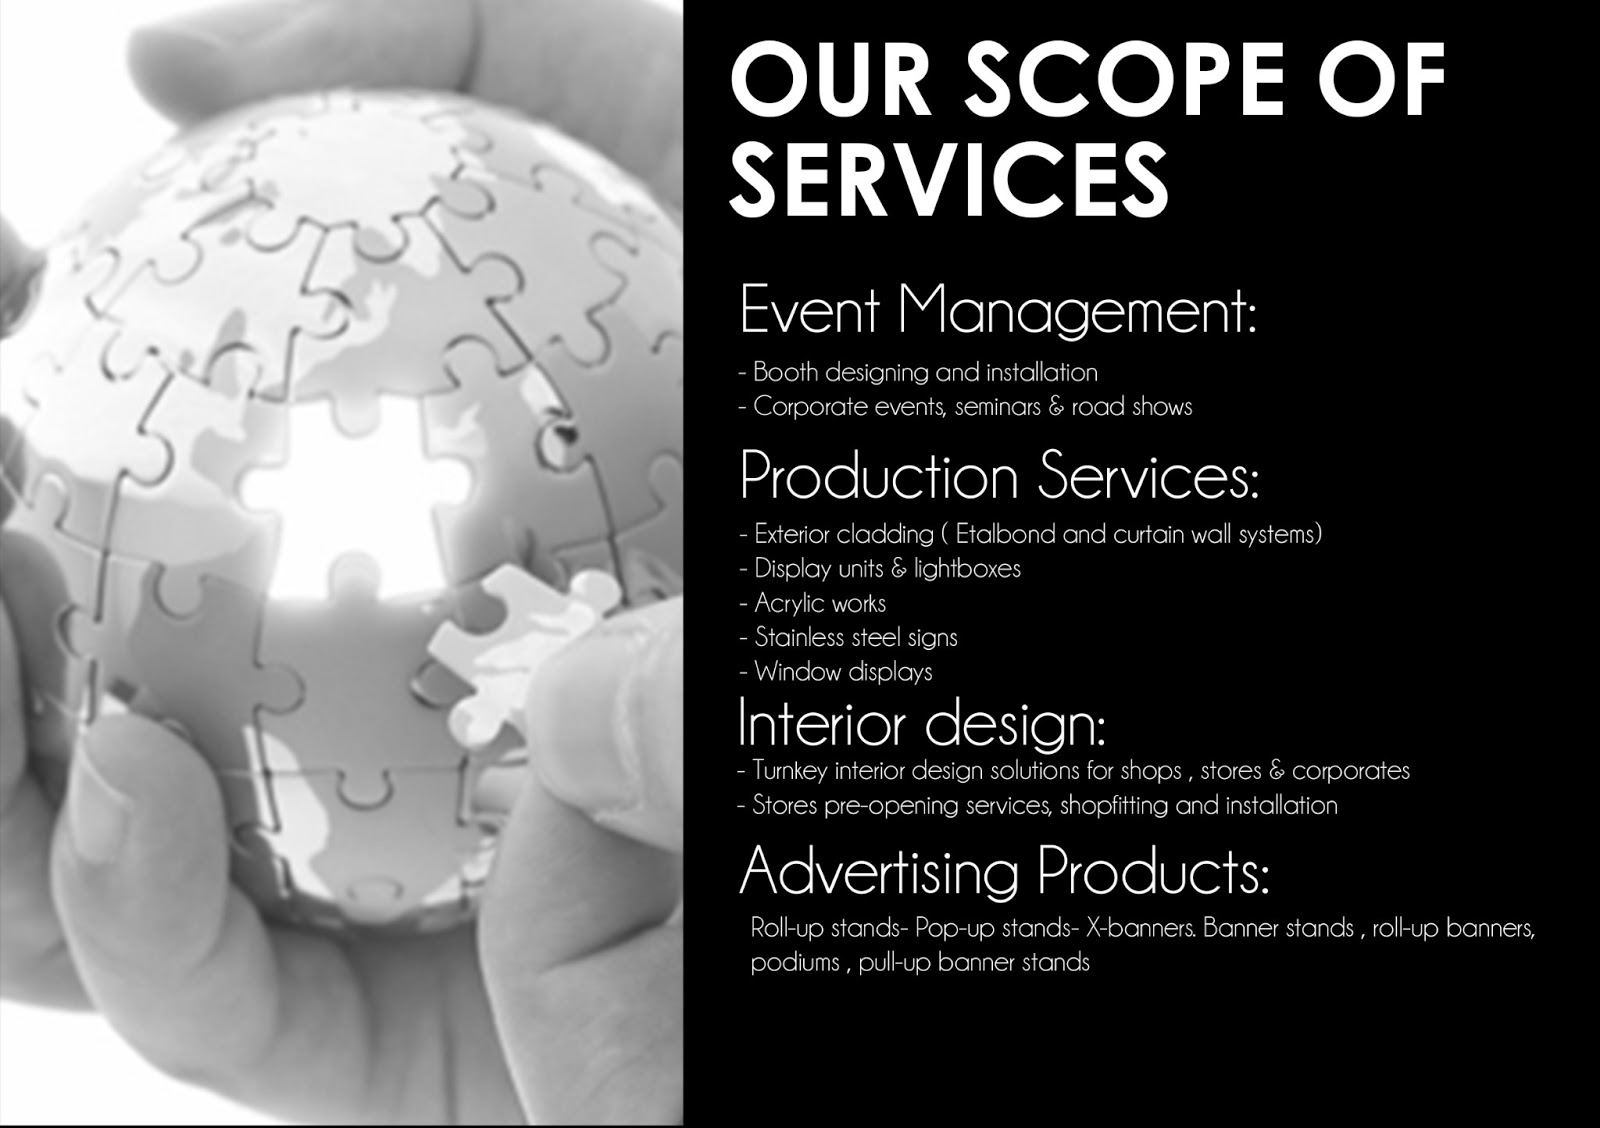 Contact me at susie or call 512 346 6892 for Ad agency profile